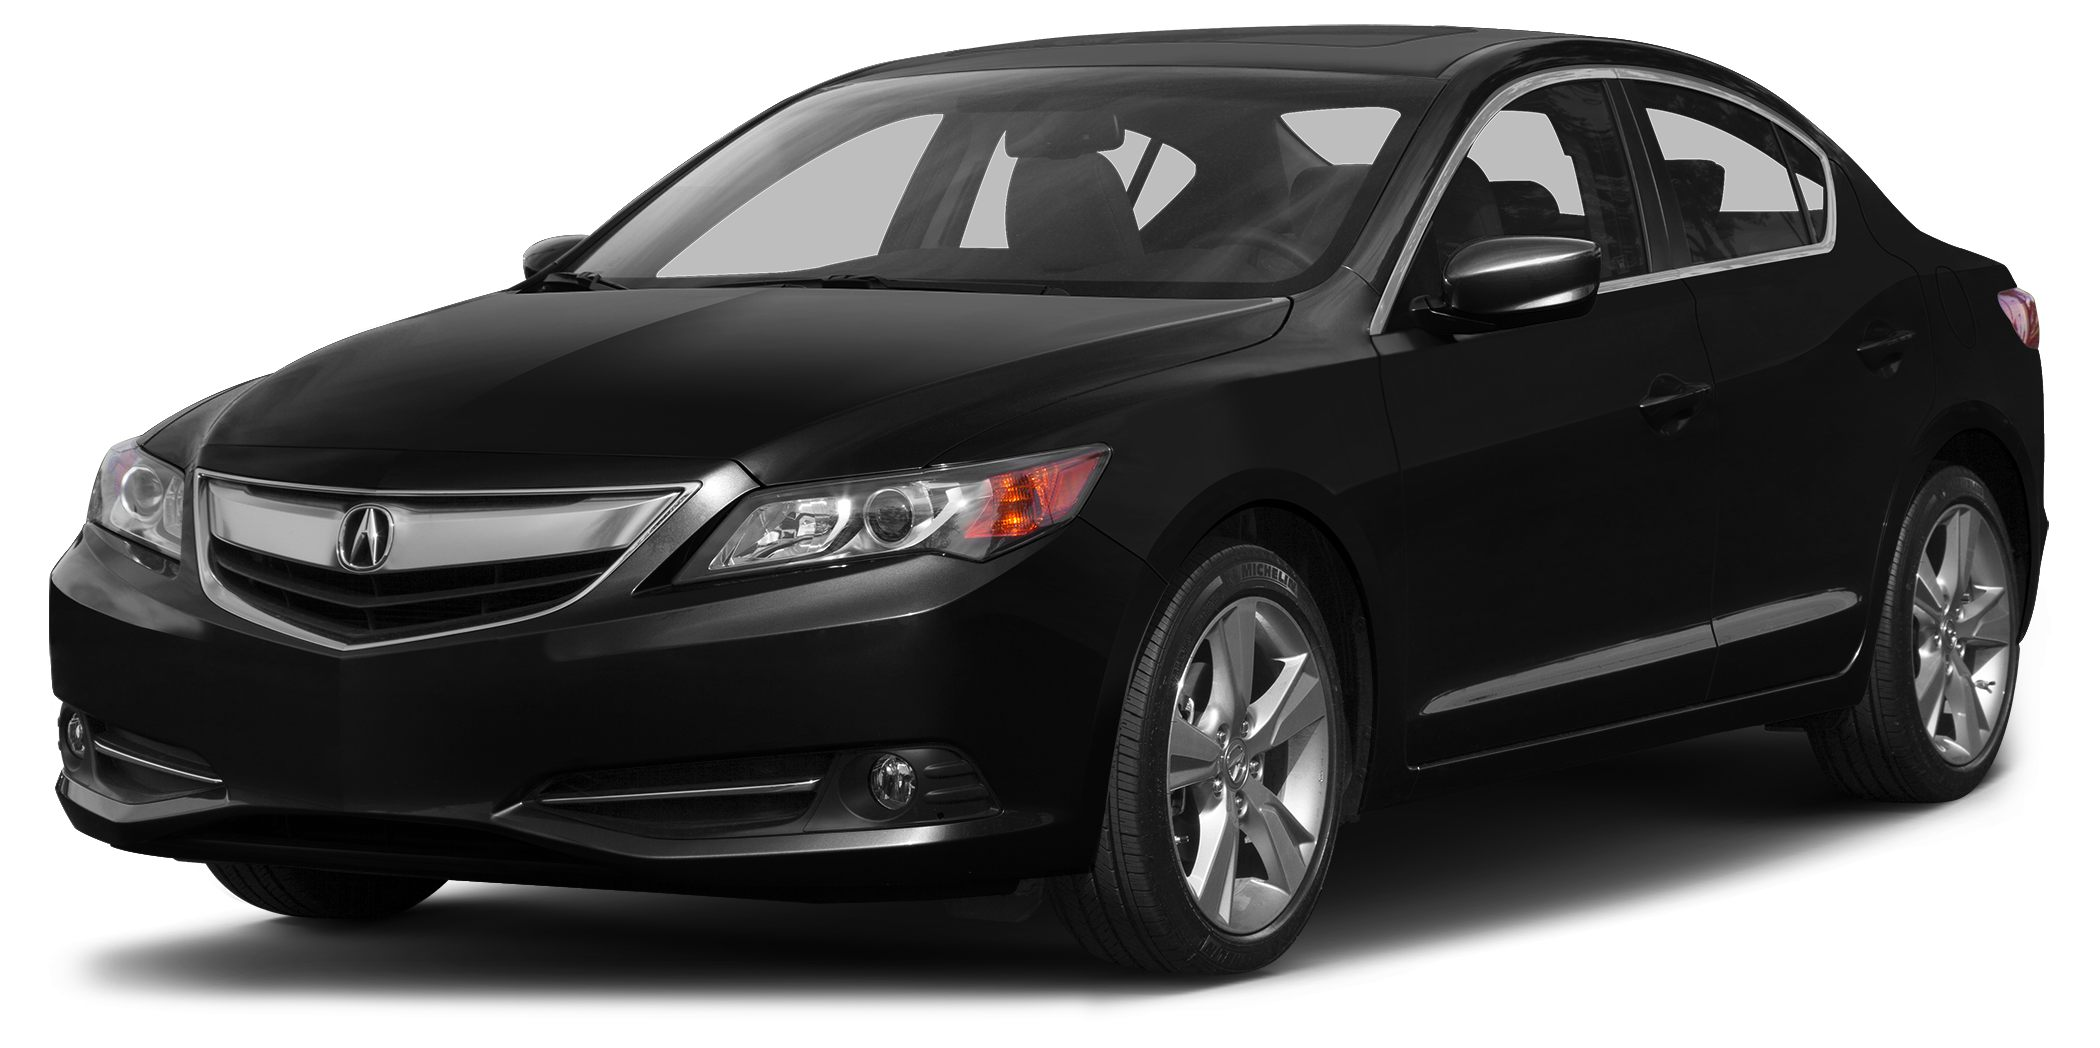 2013 Acura ILX 20 Premium ROOF LEATHER HEATED SEATS BLUETOOTH LOW MILES PRICED TO SELL WAY